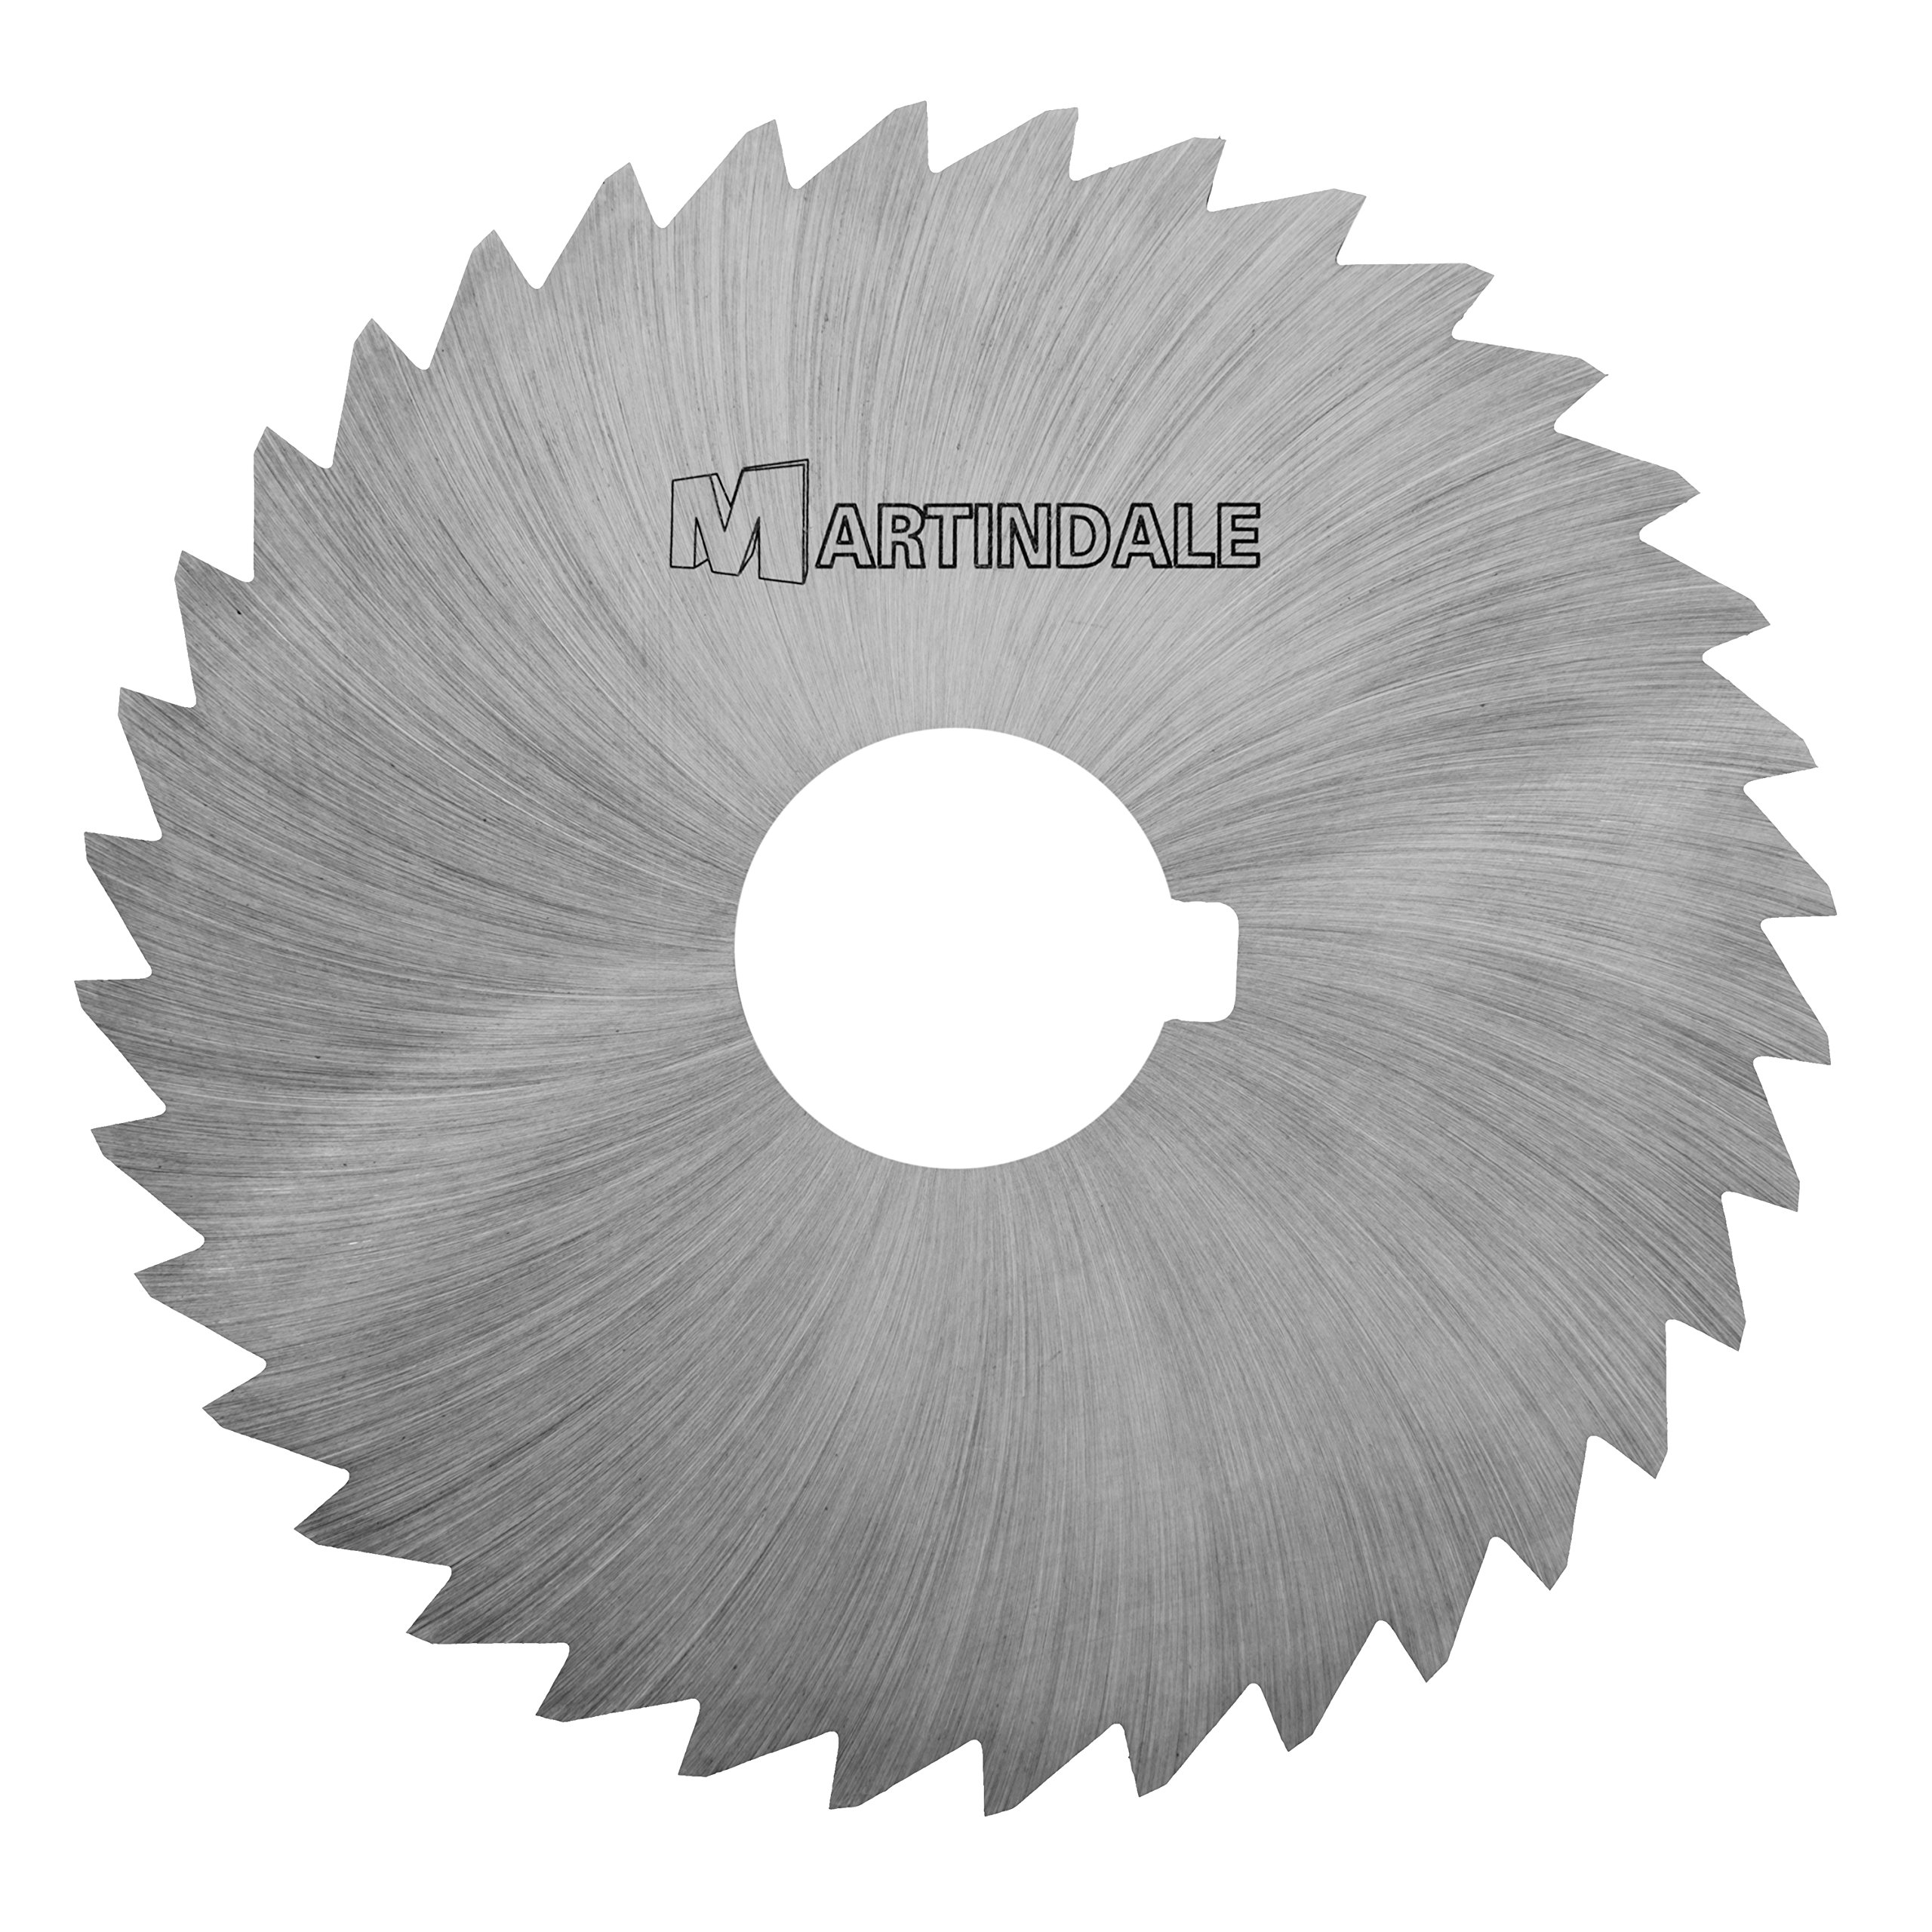 Martindale OMSLH0625 Metal Metal Slitting Saws, 2-1/2'' Outer Diameter, 7/8'' Hole Diameter.0625'' Thick, 28 Teeth